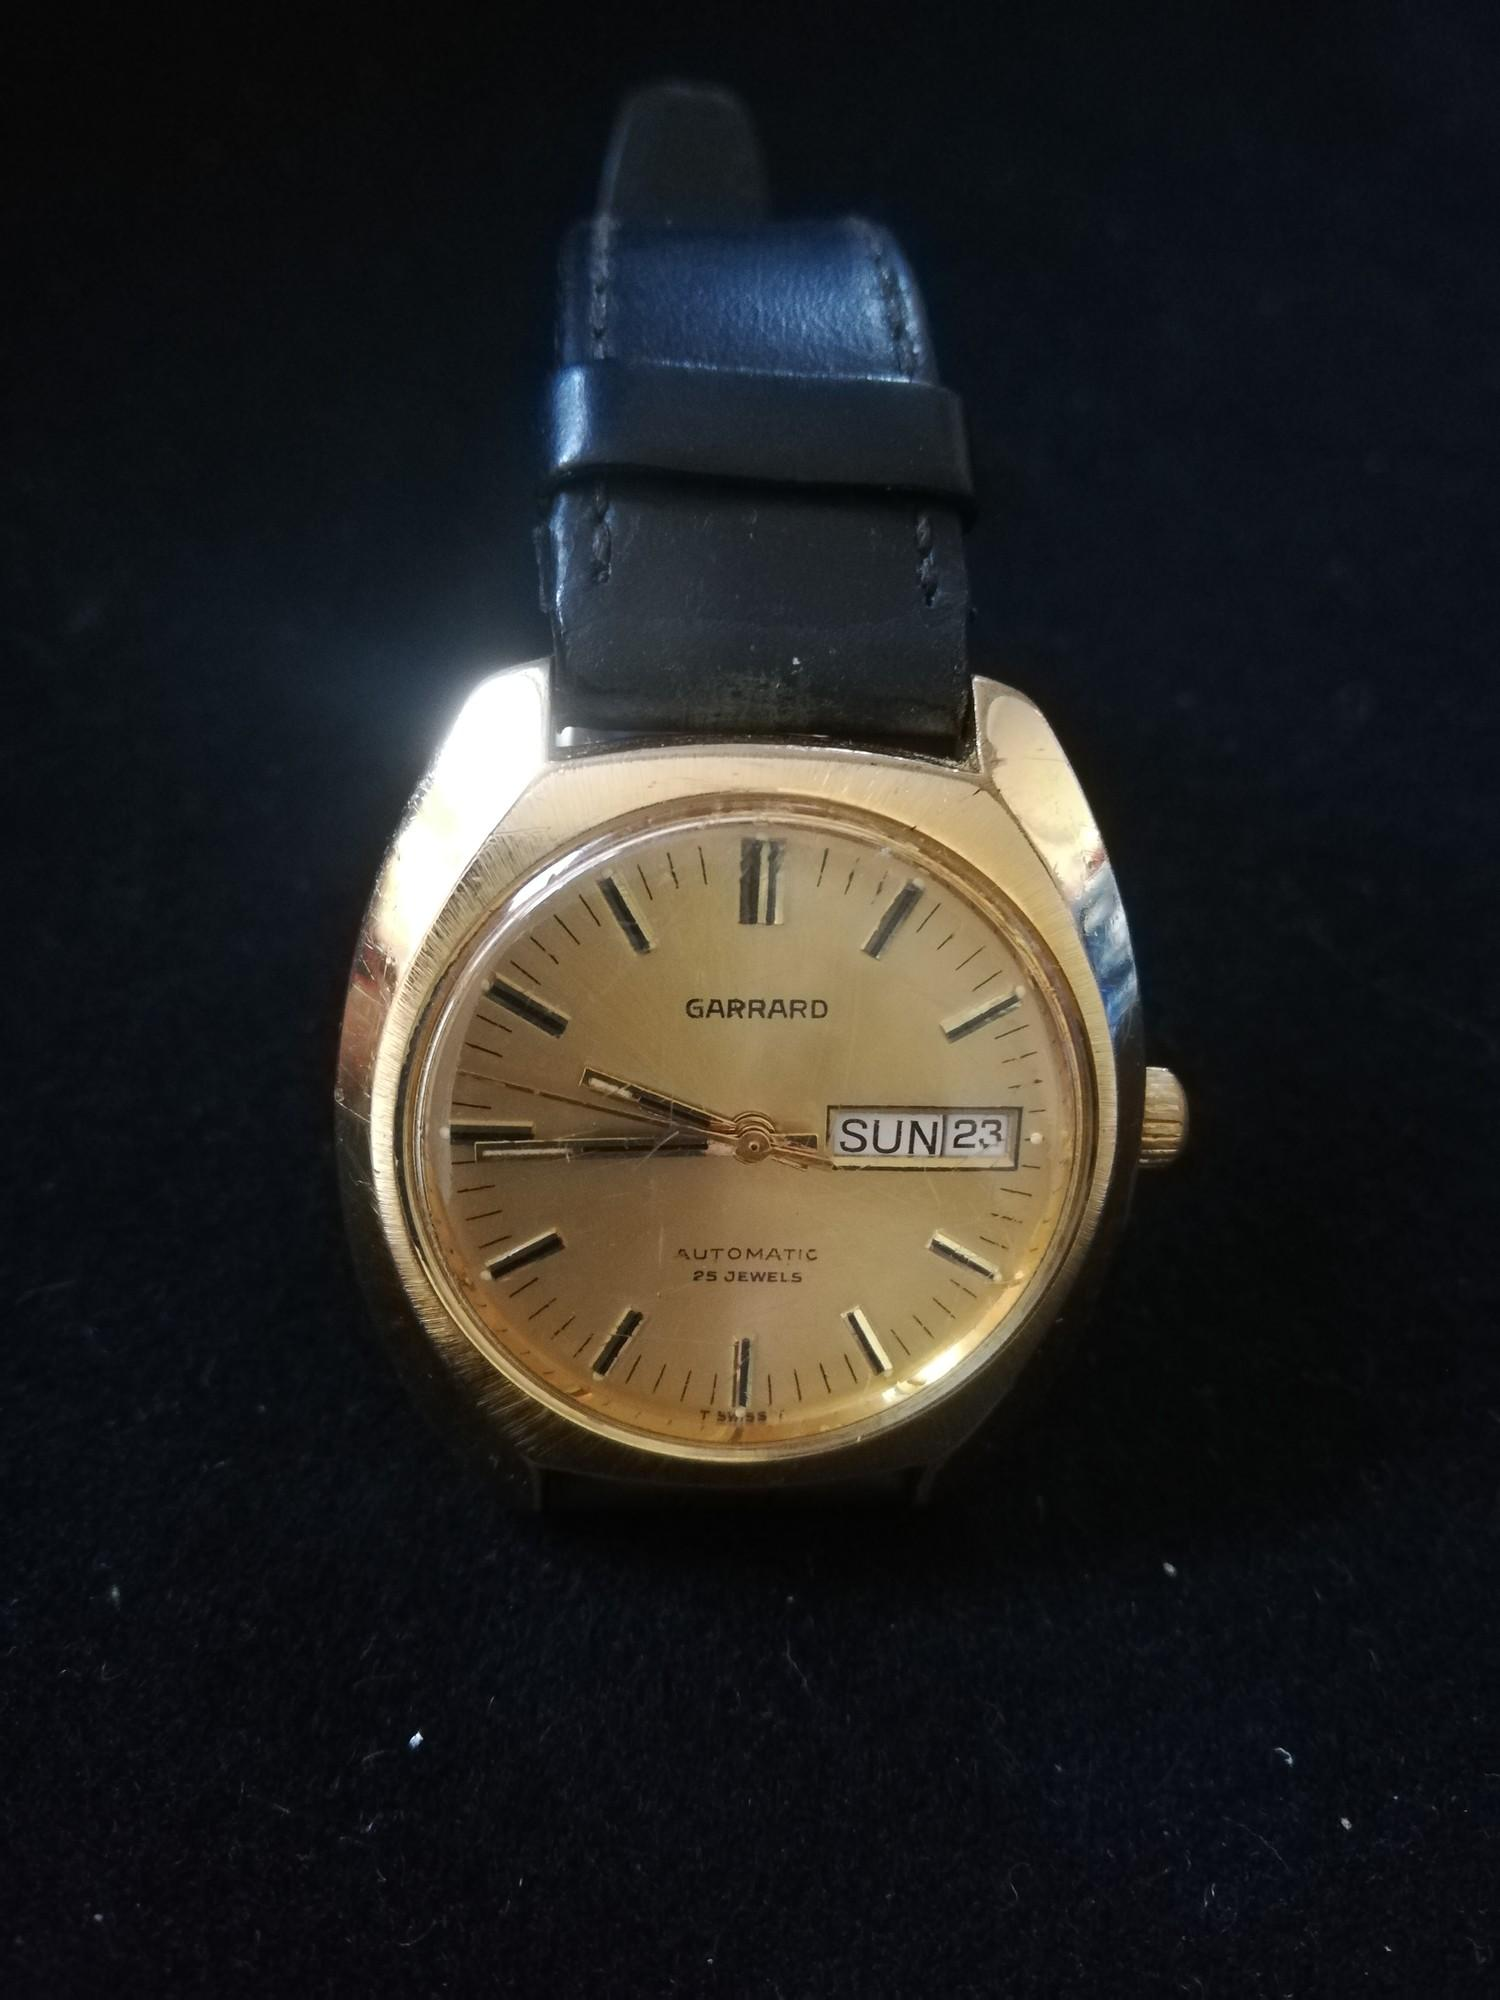 Garrard gold plated wristwatch with automatic movement in worn condition with inscription to back